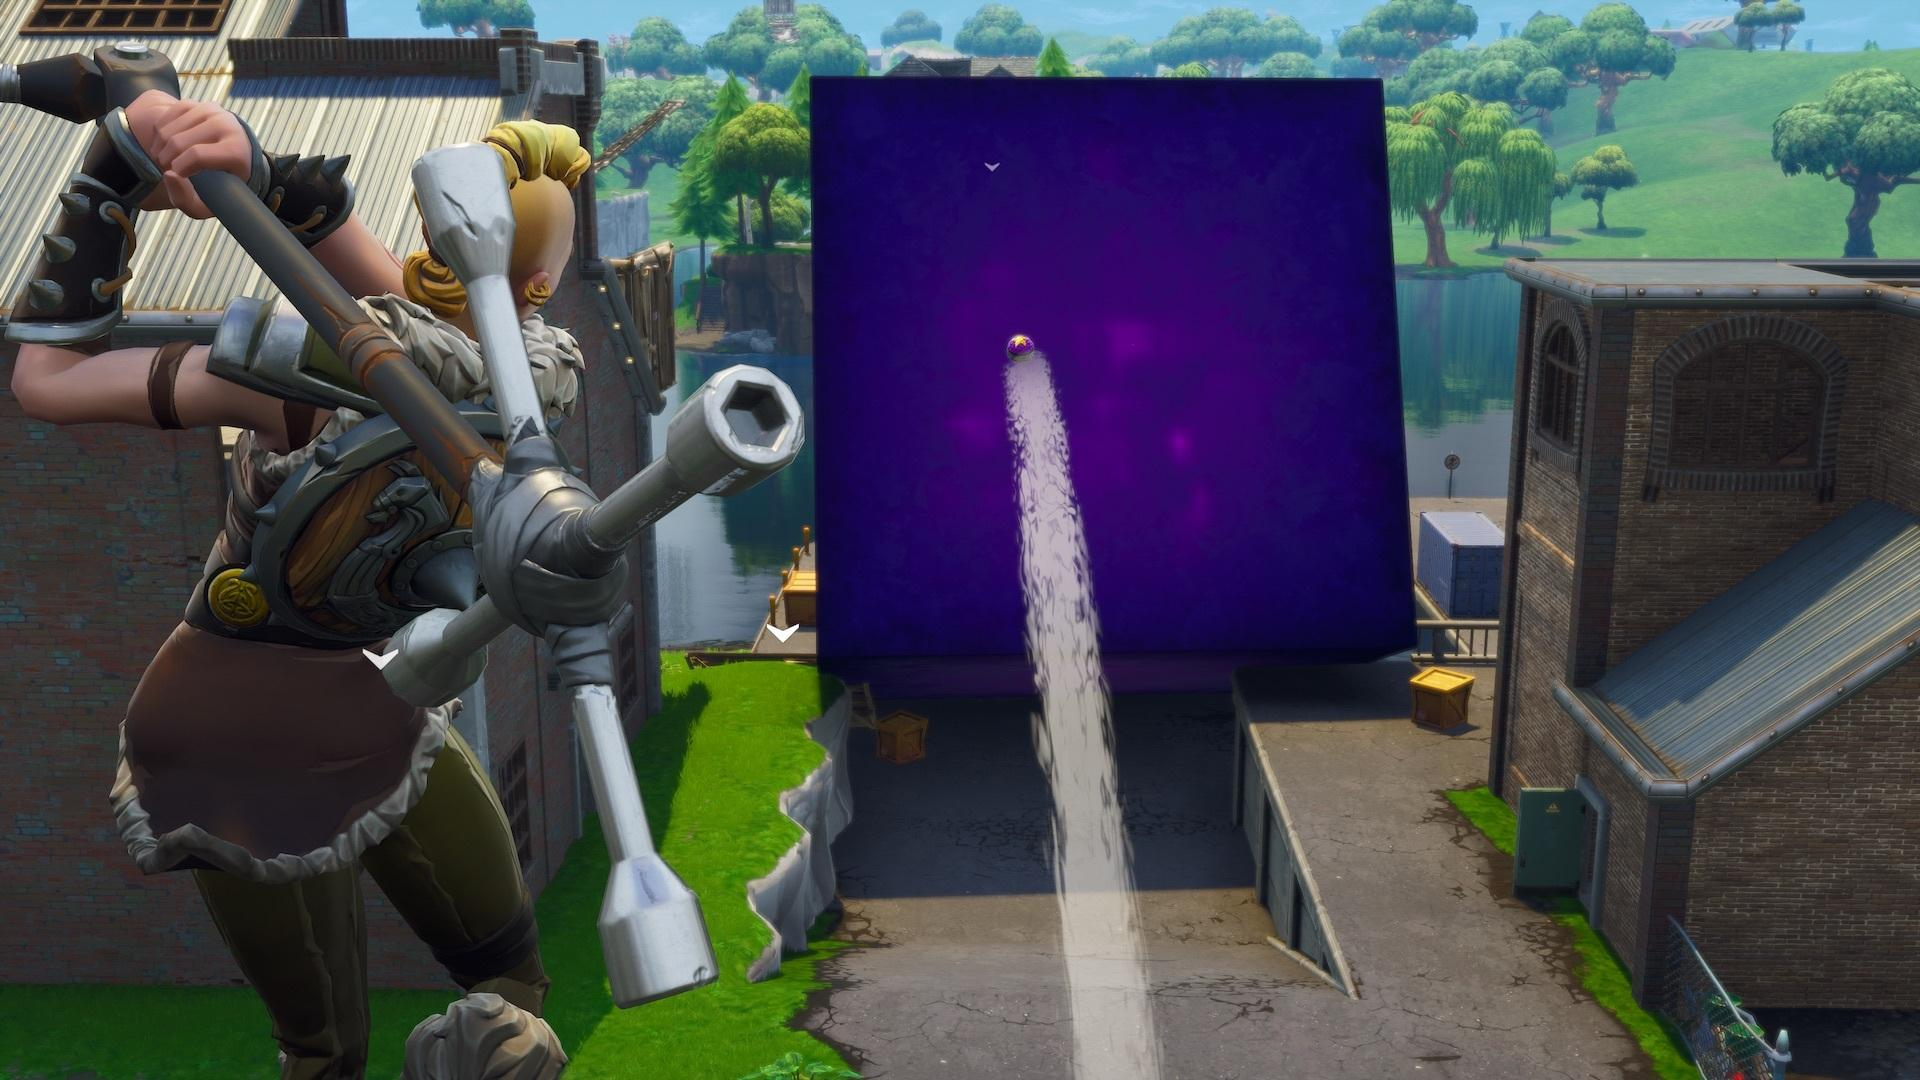 Fortnite: What's Up With The Cube And Loot Lake? Season 6 Theories